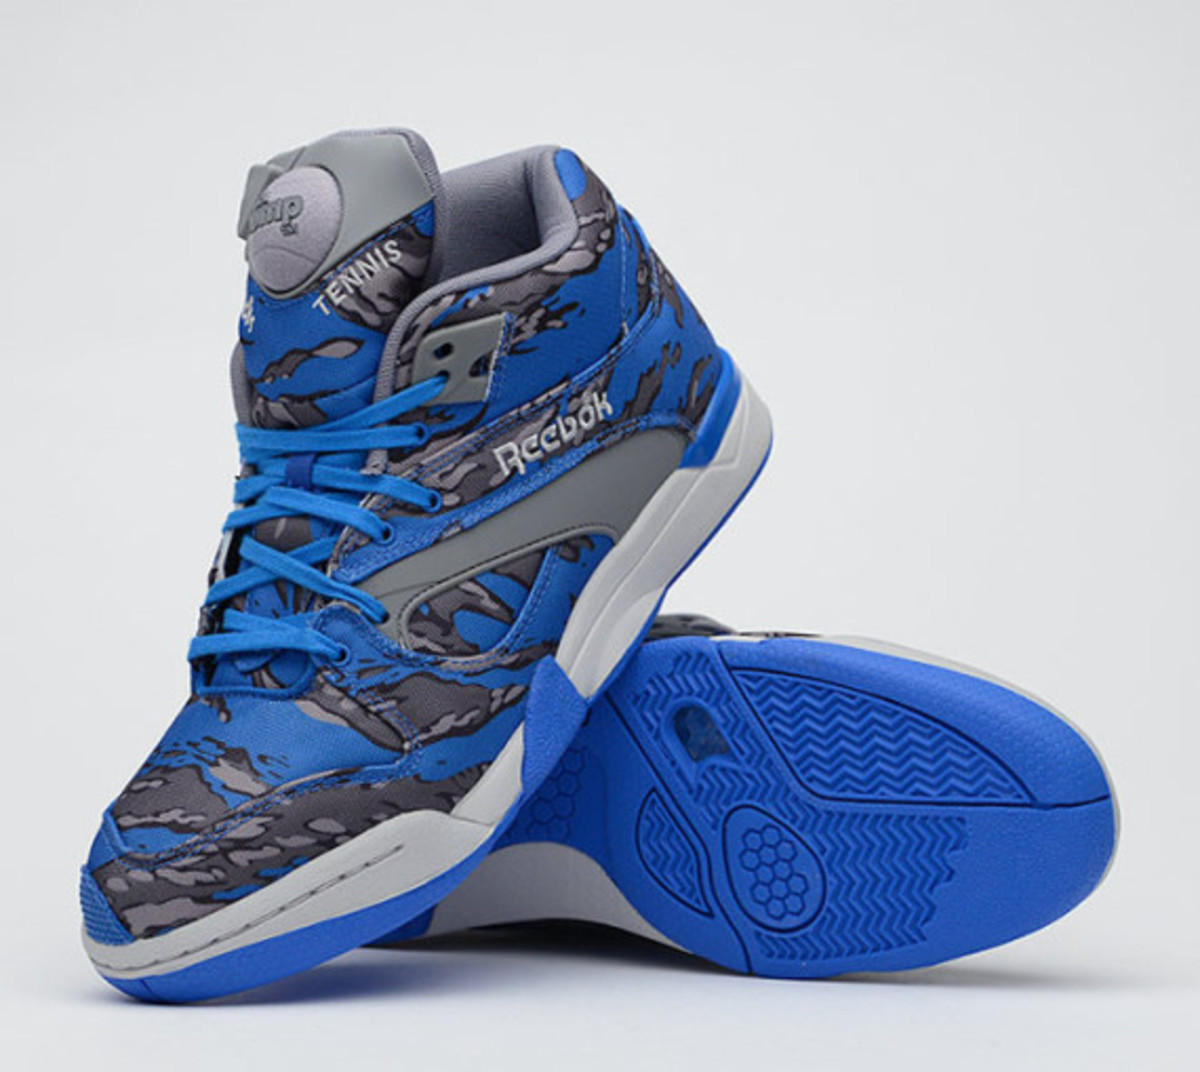 stash-reebok-court-victory-pump-camo-collection-04